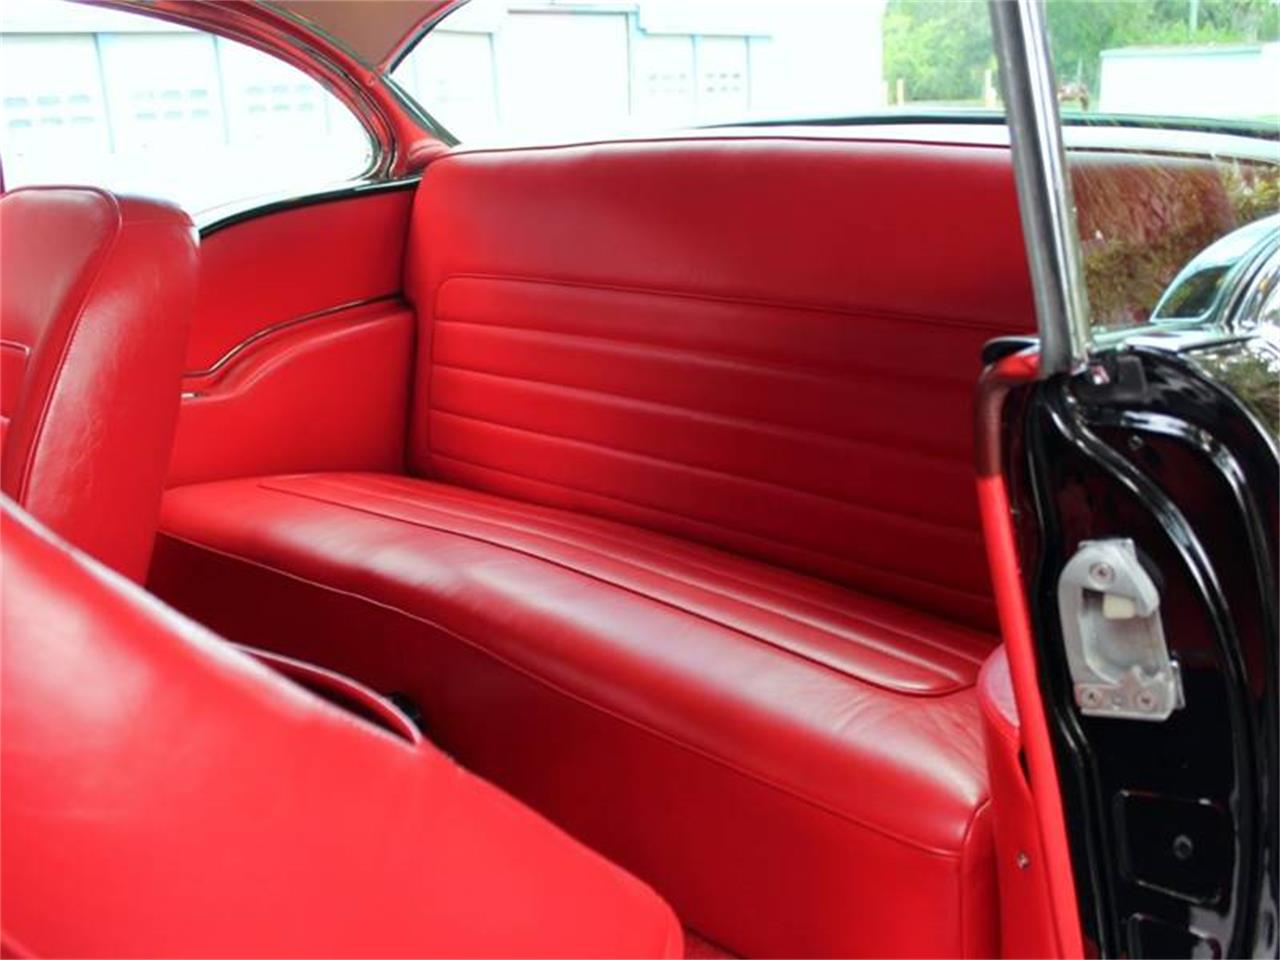 Large Picture of Classic '55 Chevrolet Bel Air located in Clearwater Florida - $59,900.00 - QRFG